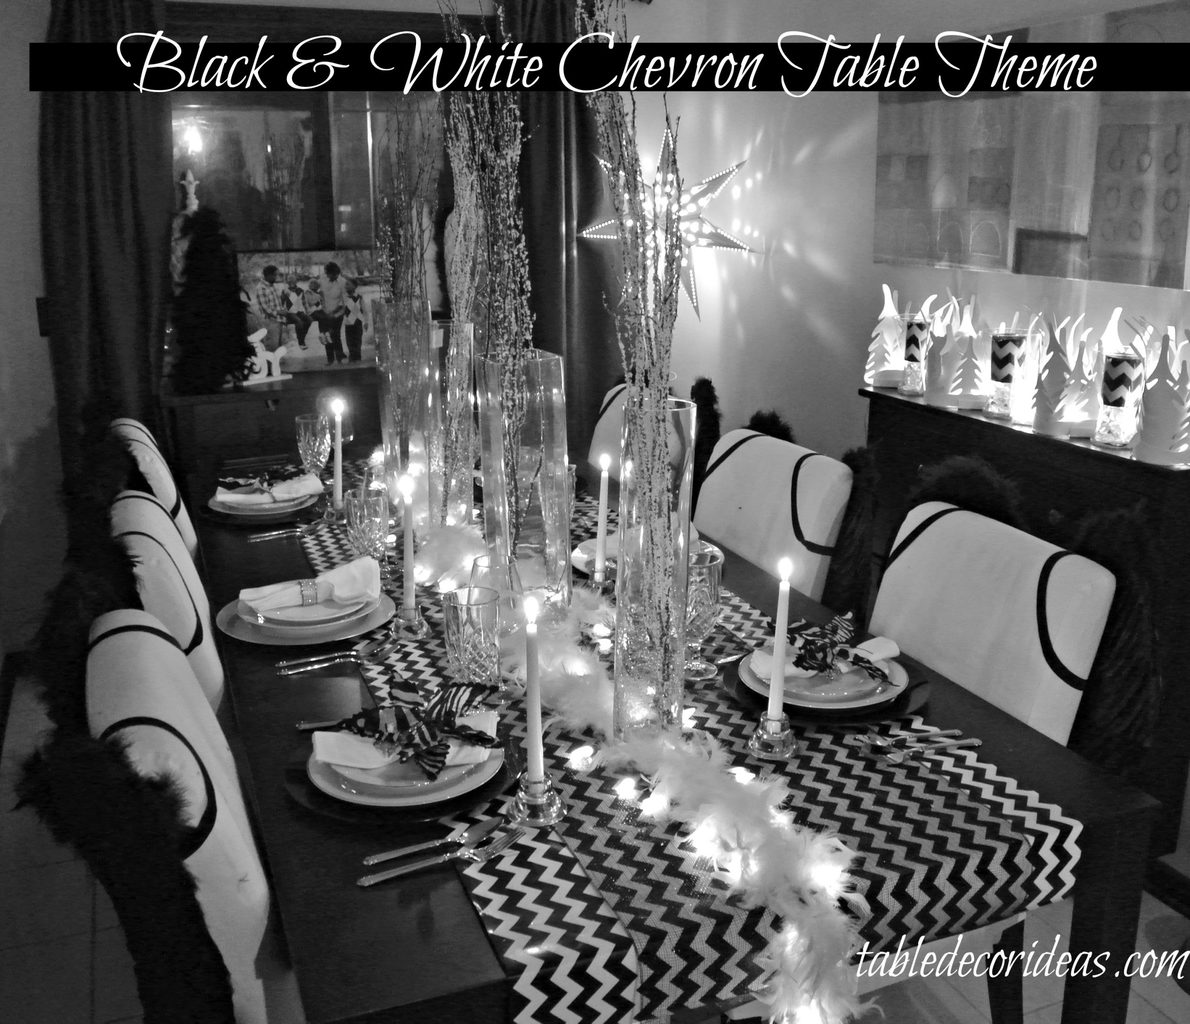 Take your Christmas Decor to new heights and style with this easy Chevron Black & White Christmas Theme